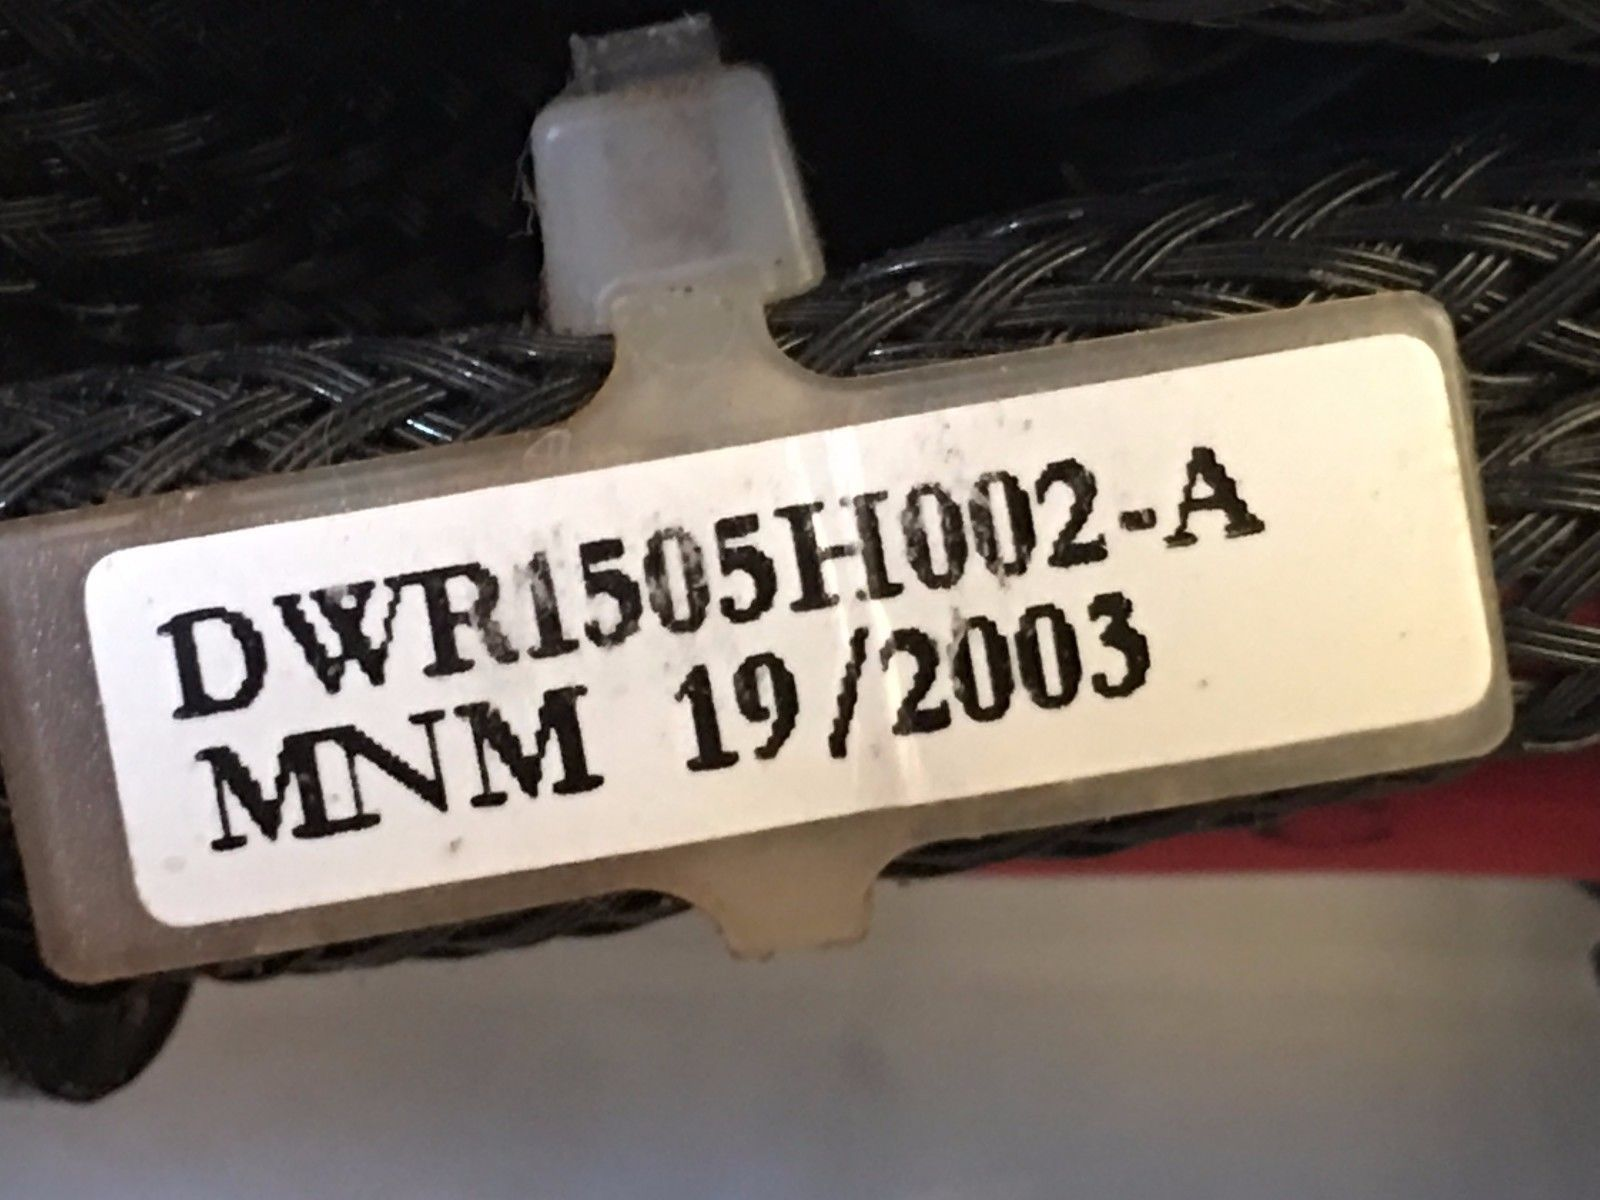 DWR1505H002 H-1505-002 Quantum Wiring Harness for Power Chairs